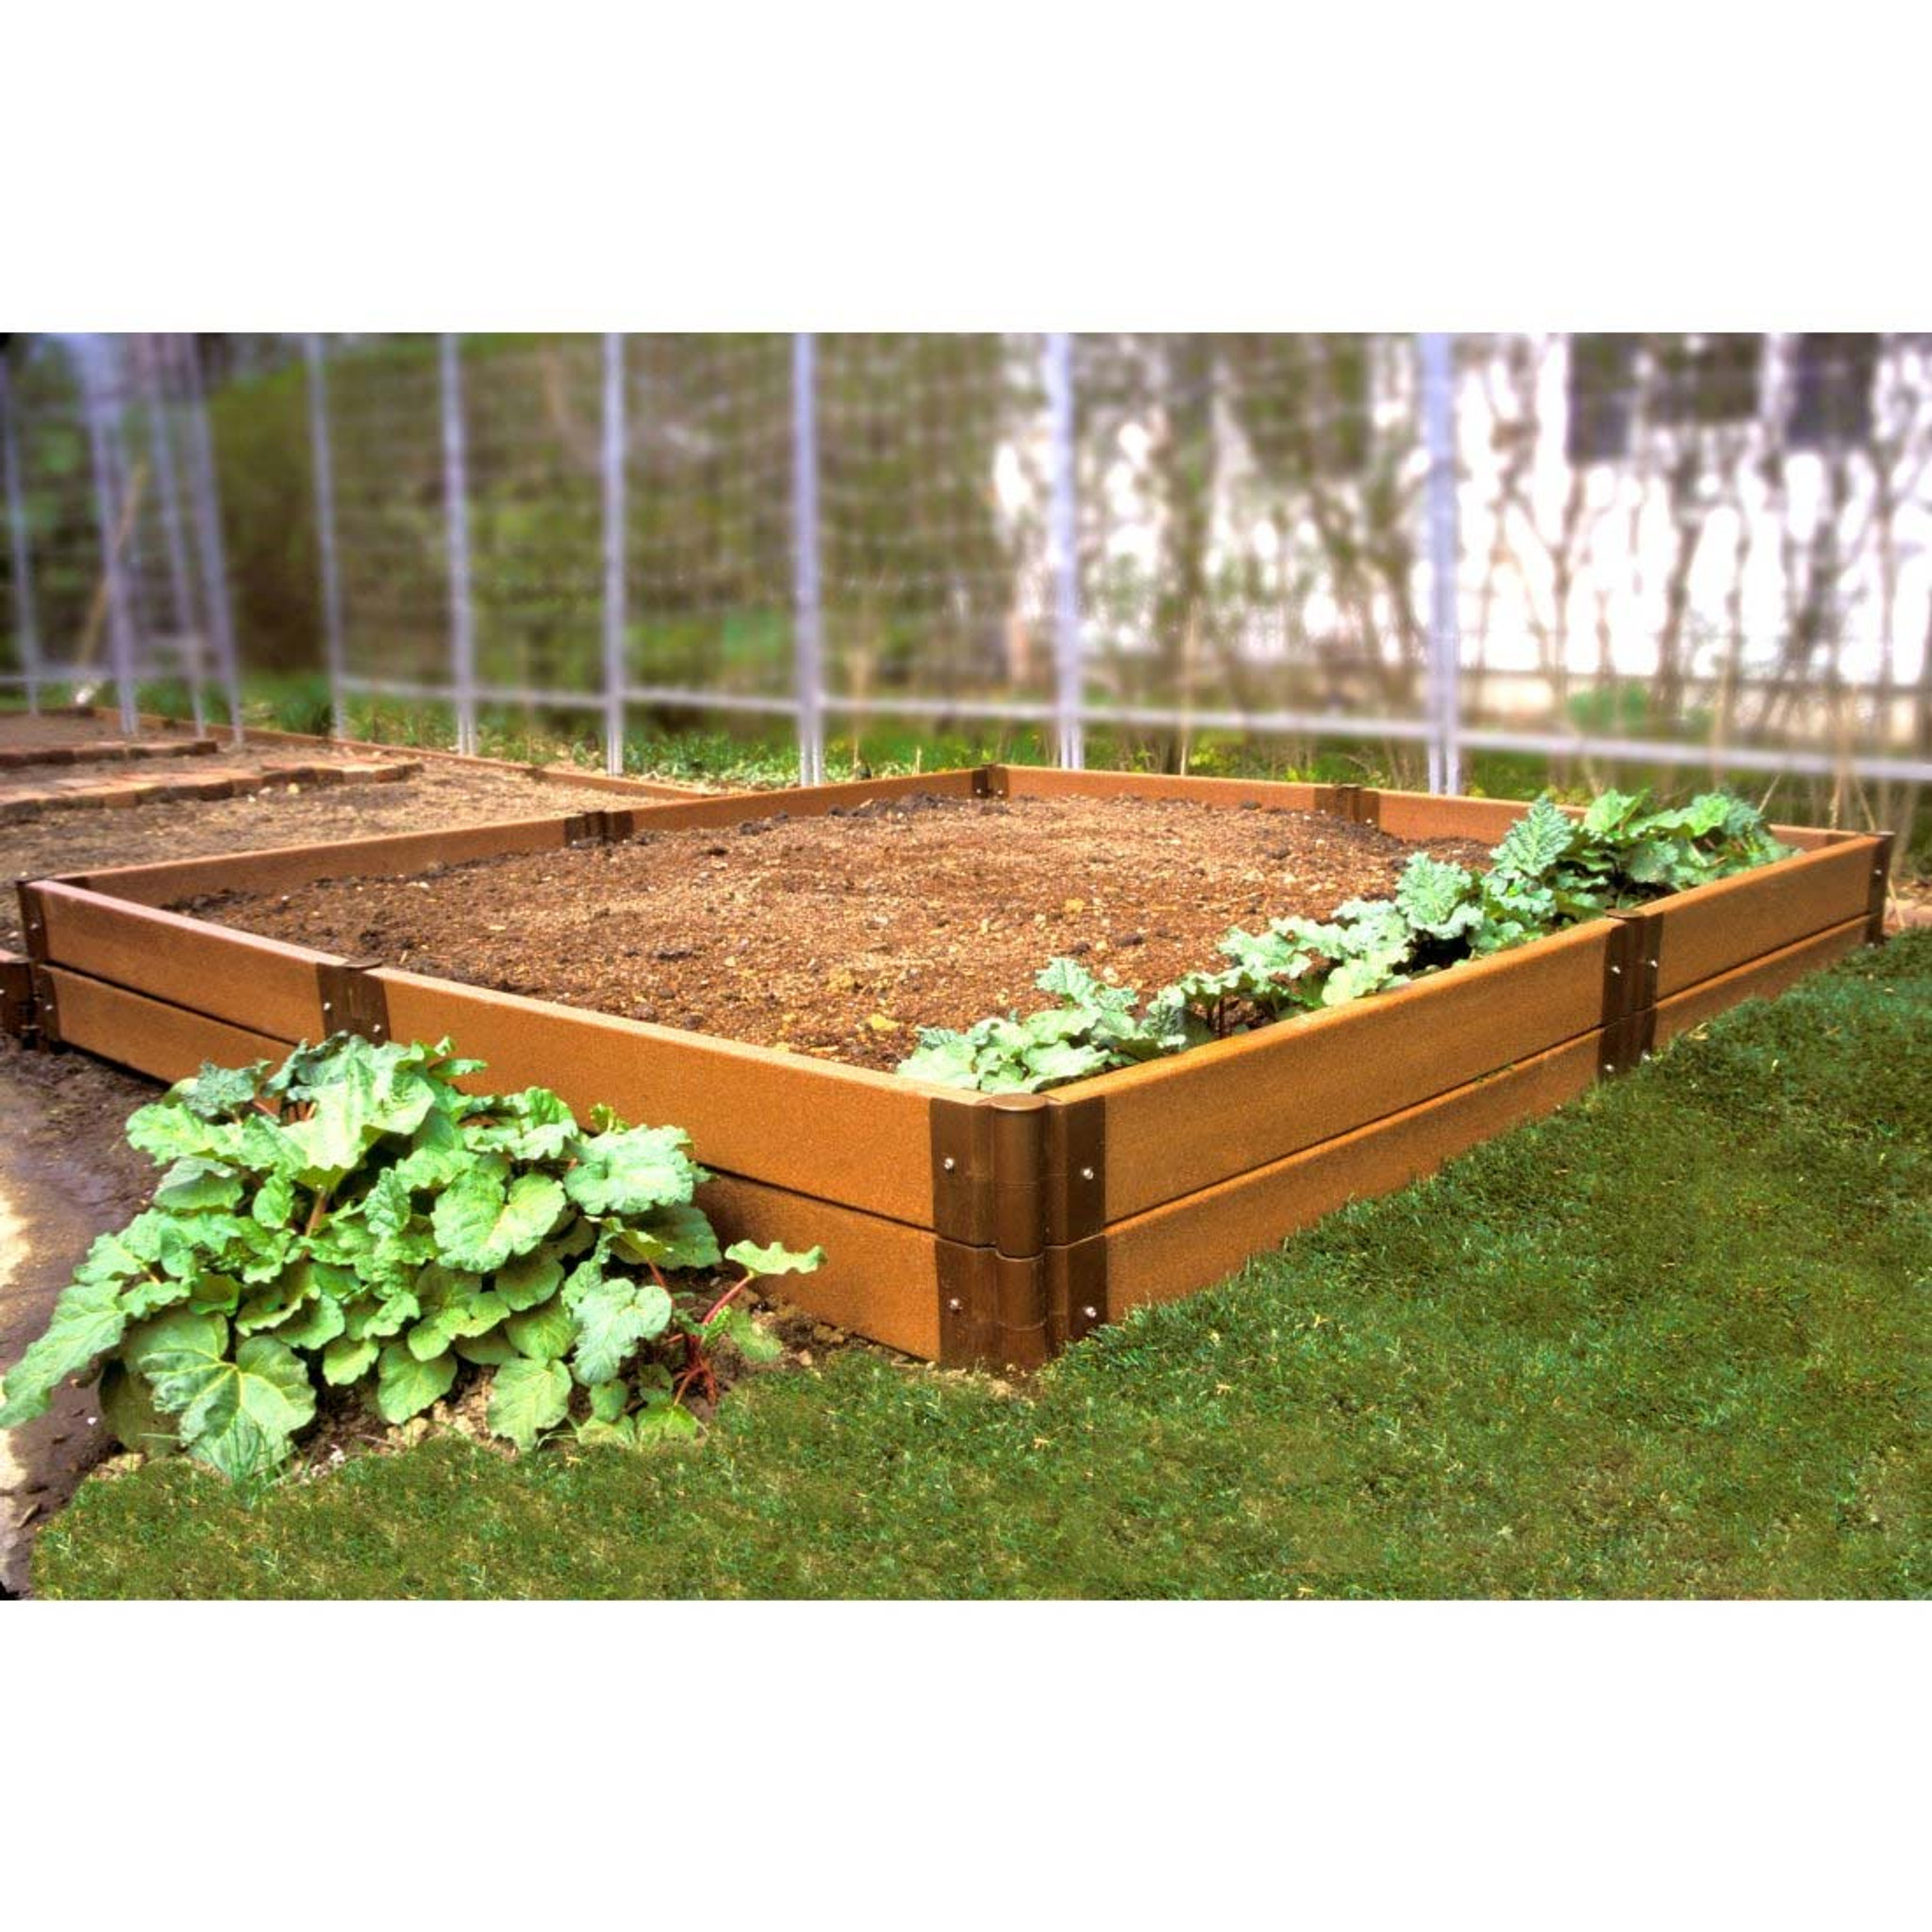 bed organic for raised garden nc beds sale cole microfarm in charlotte design kitchen gardens